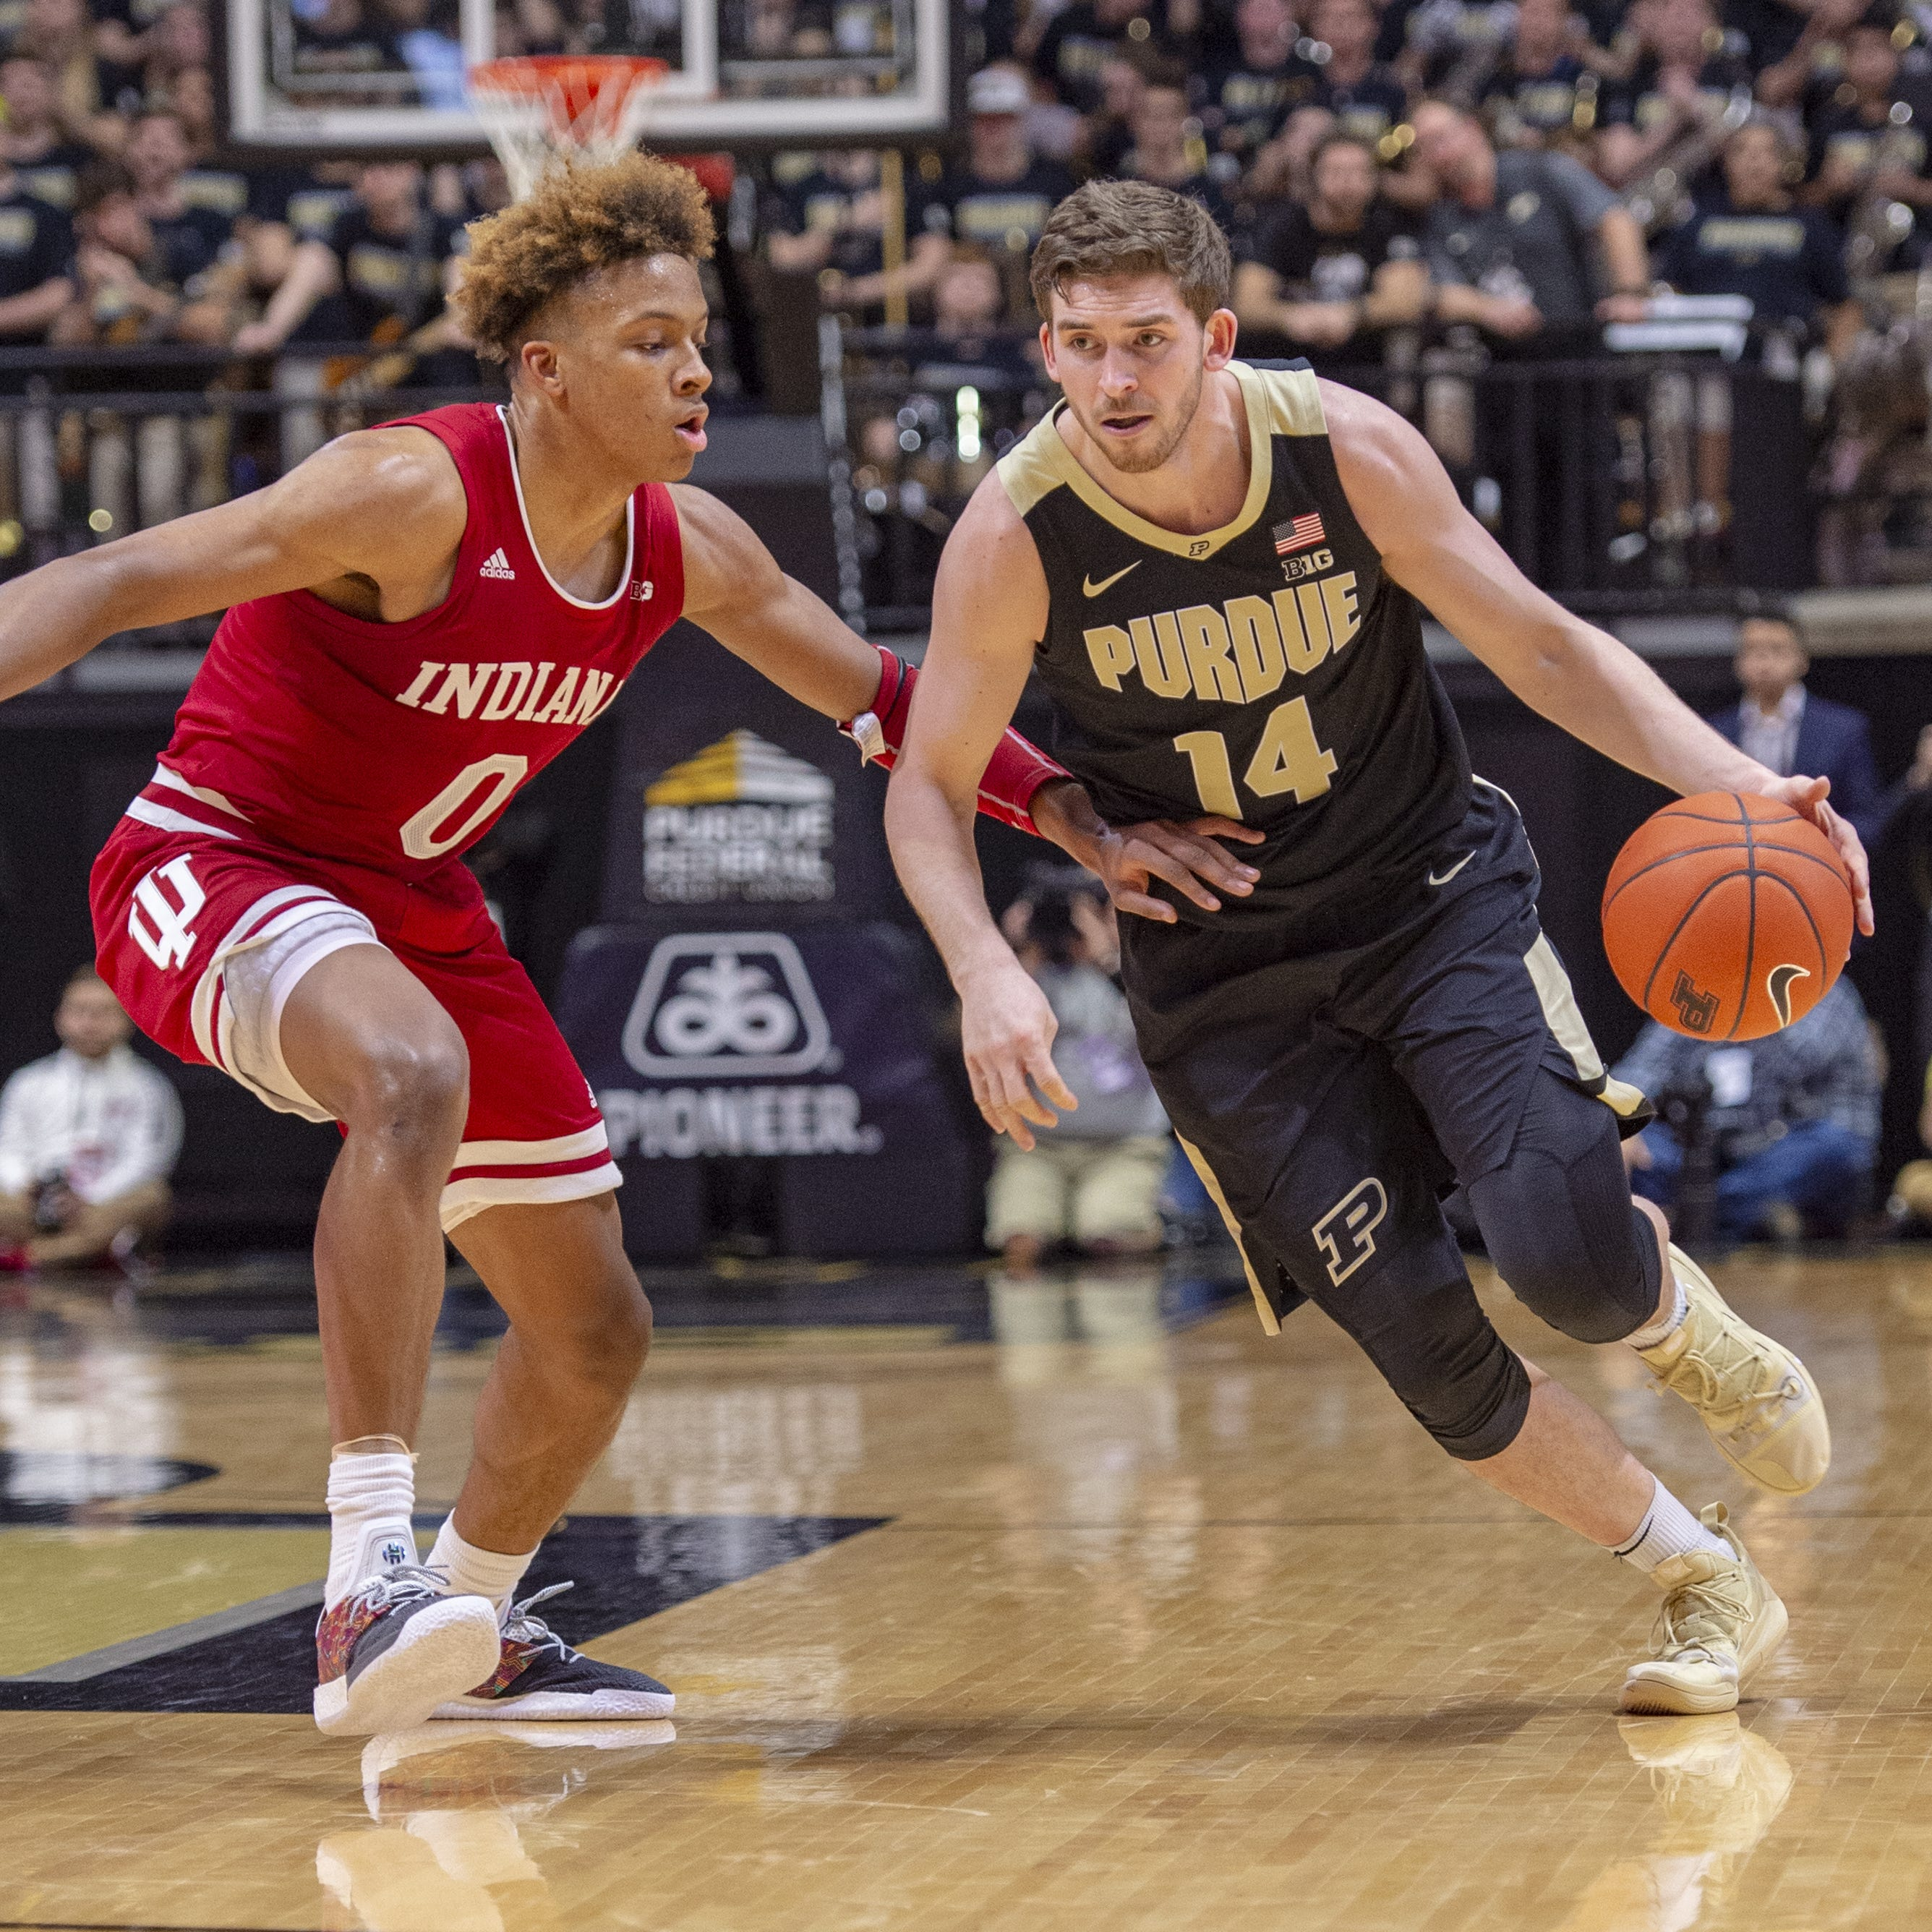 Purdue basketball seniors out to extend legacy of success at Indiana's Assembly Hall